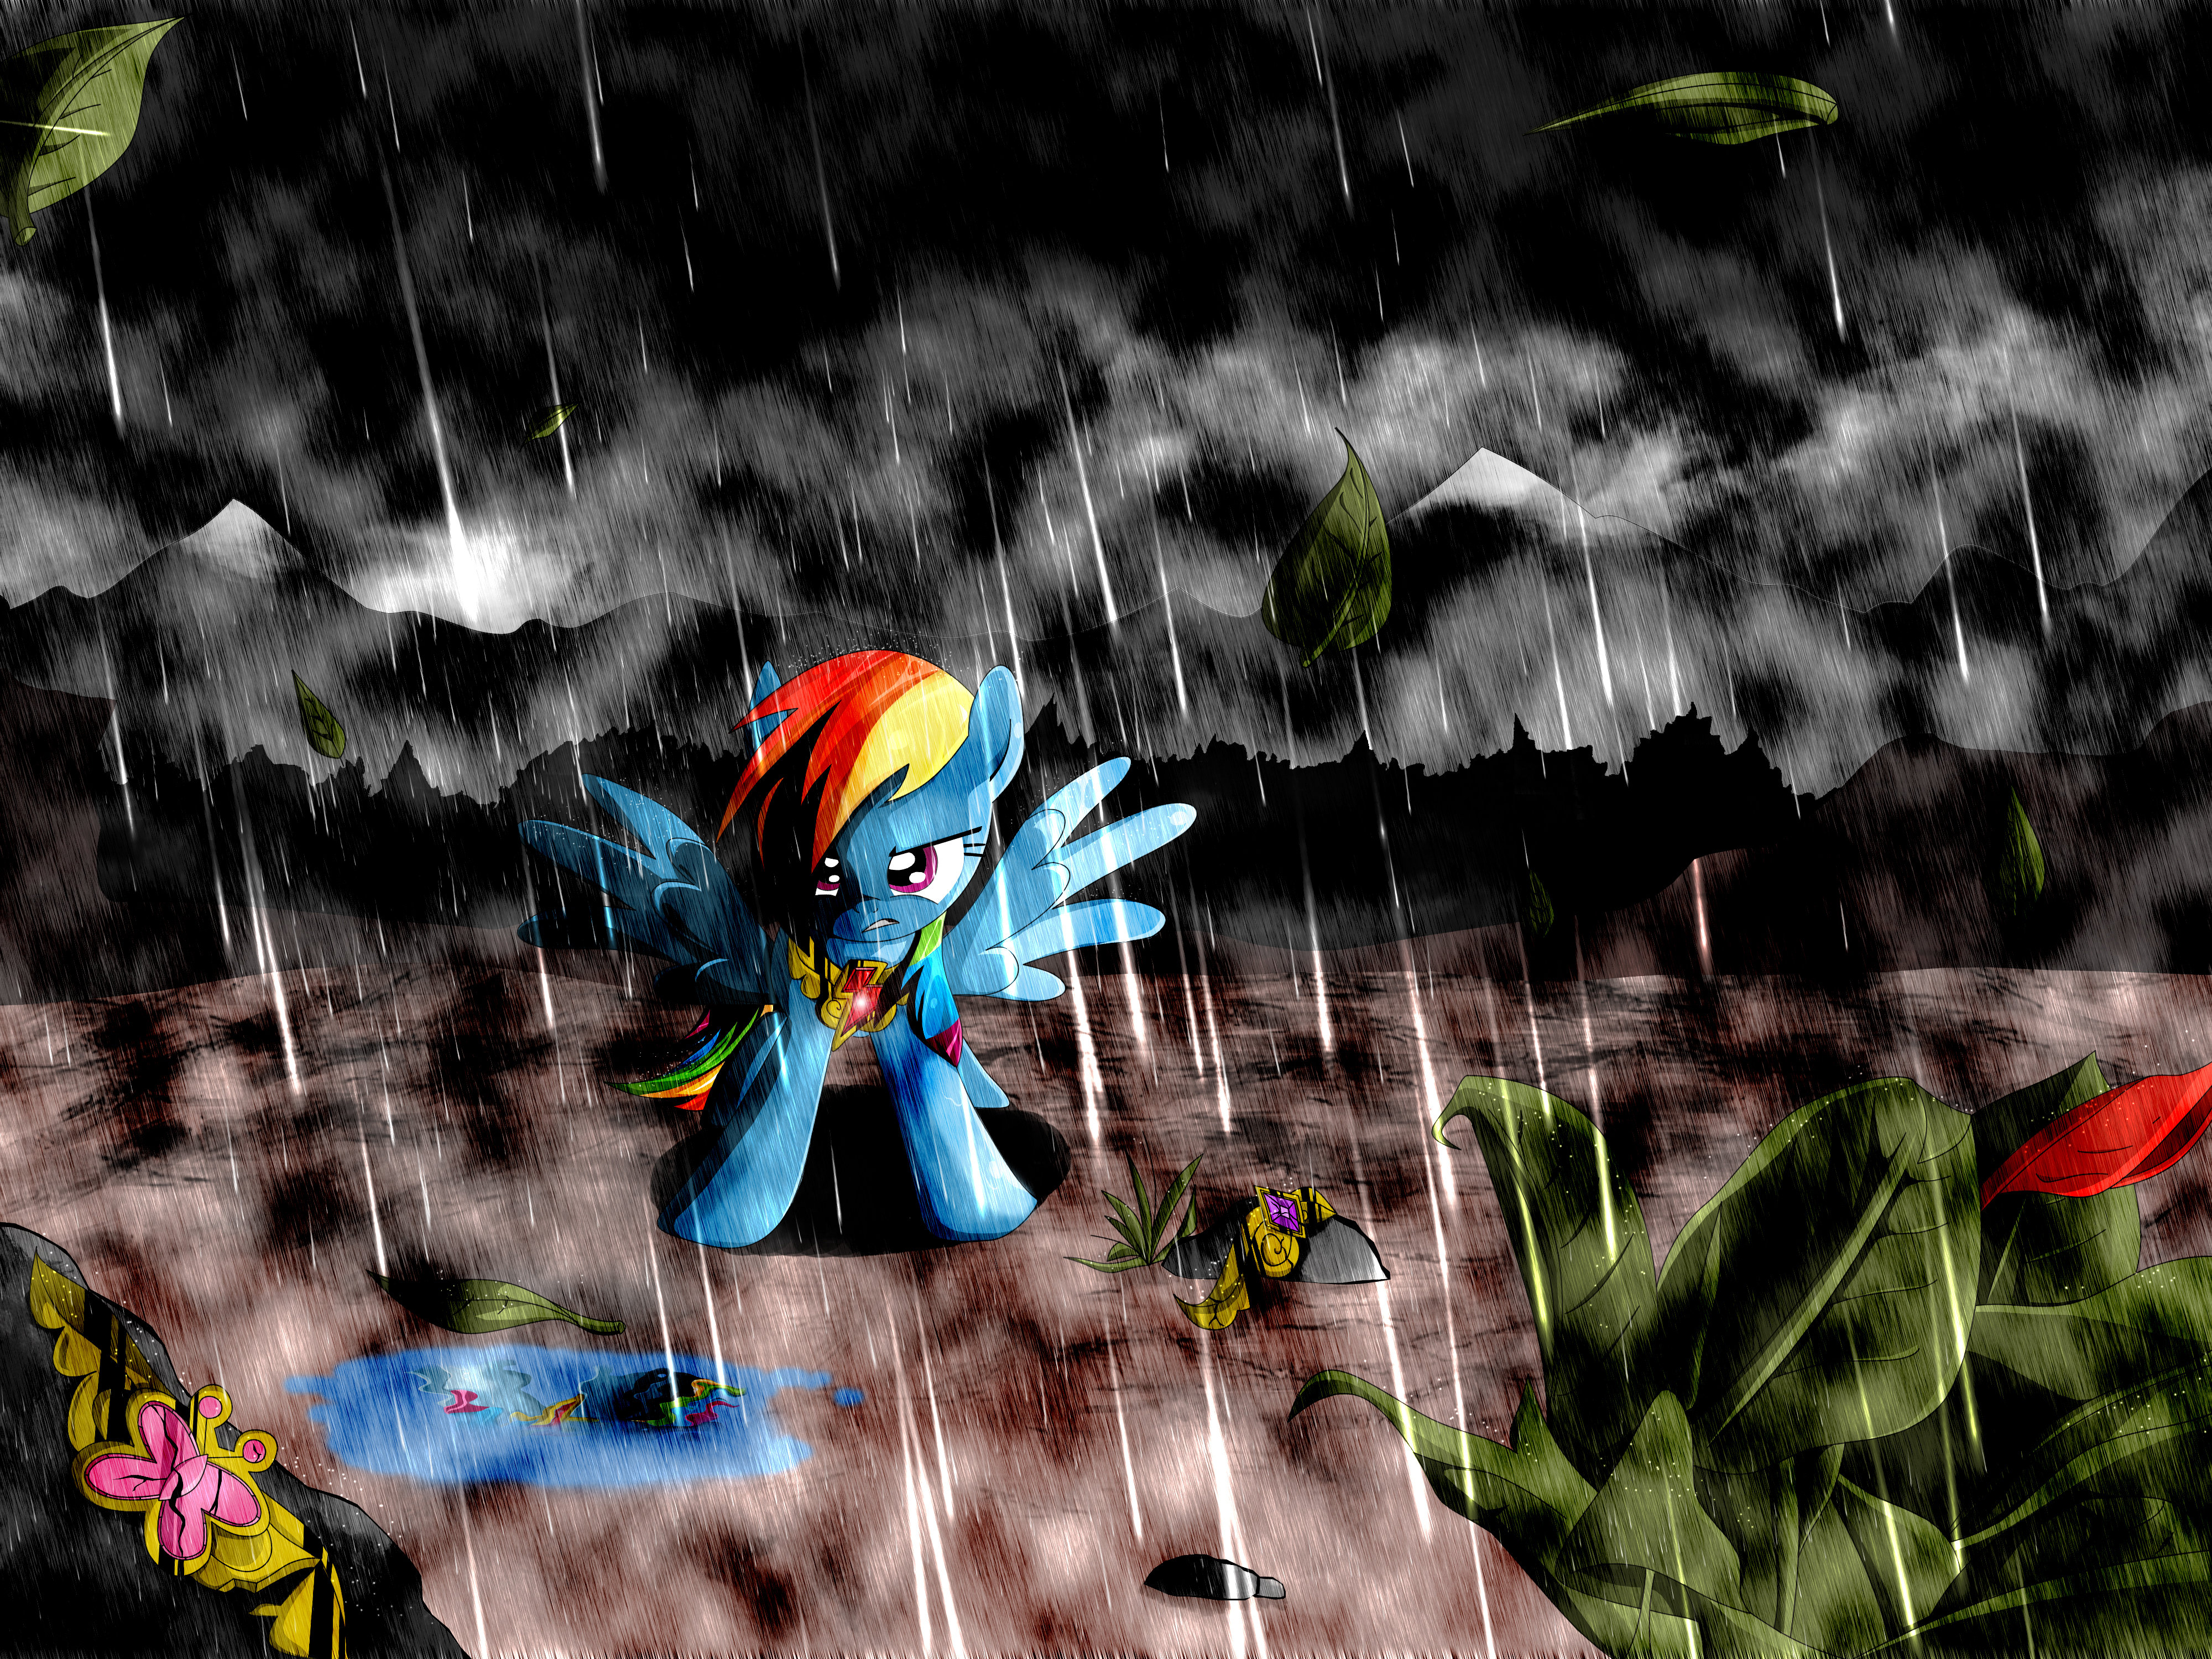 When the end arrives by labba94